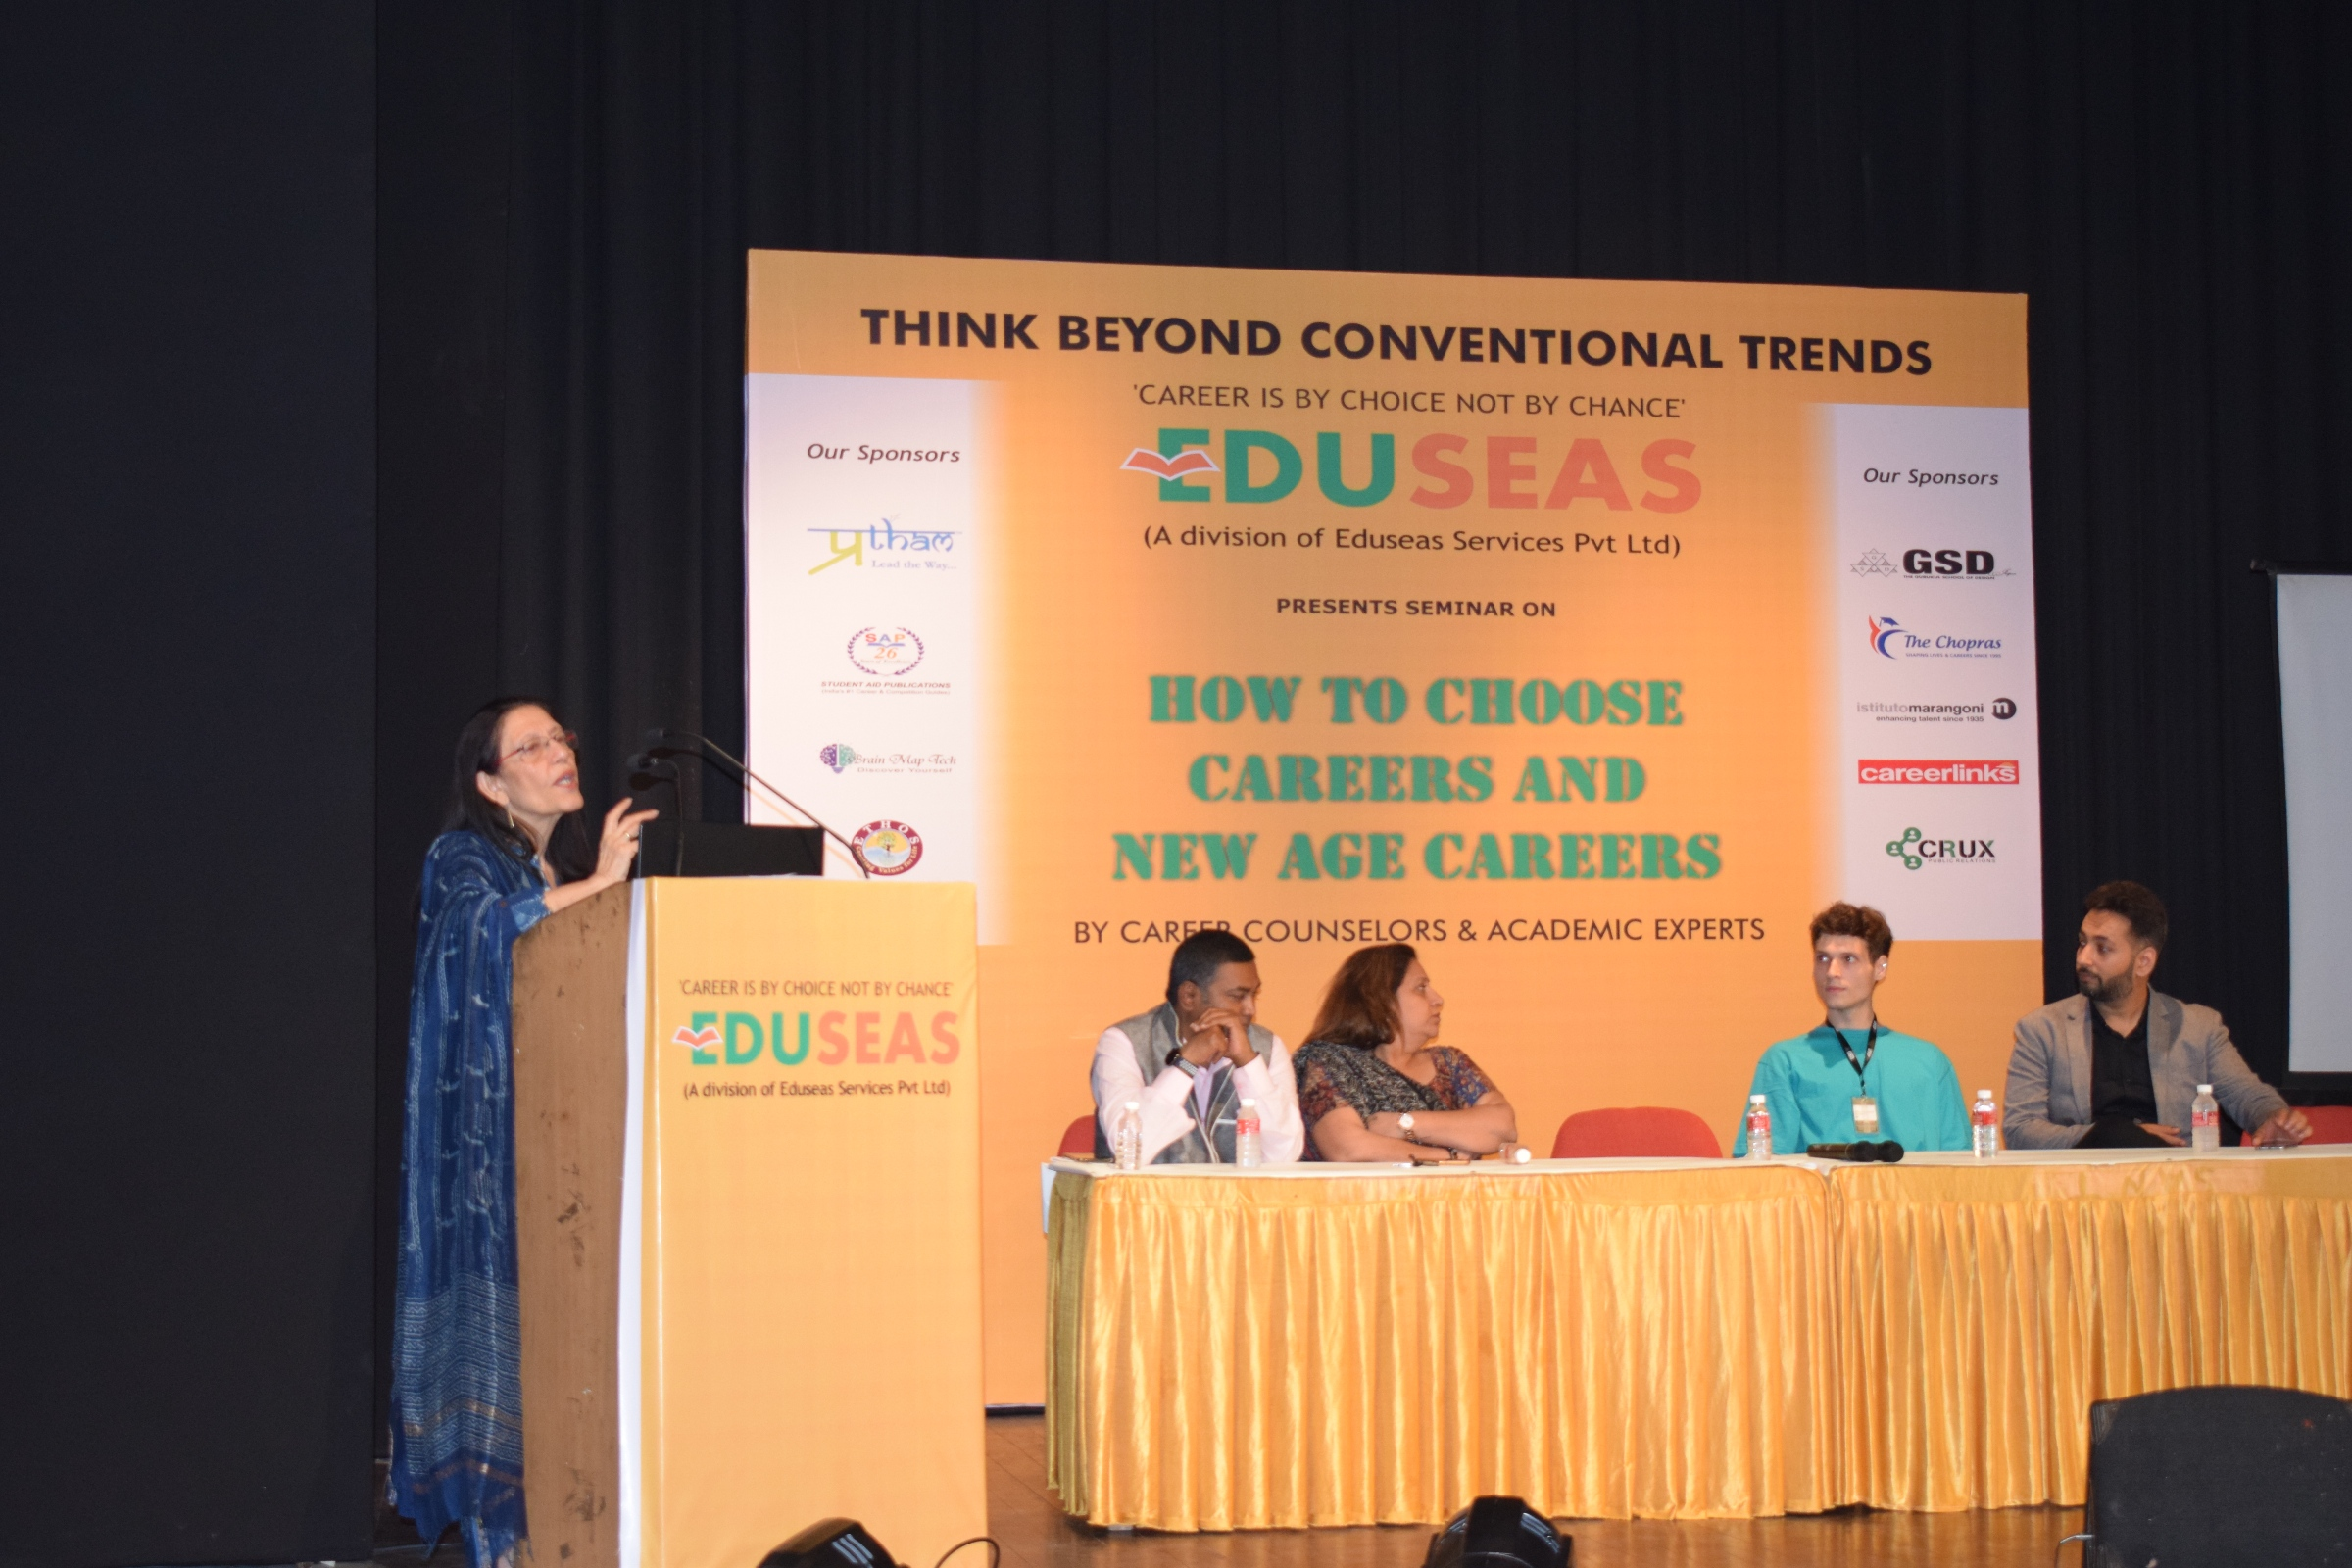 Seminar on How to Choose New Age Careers